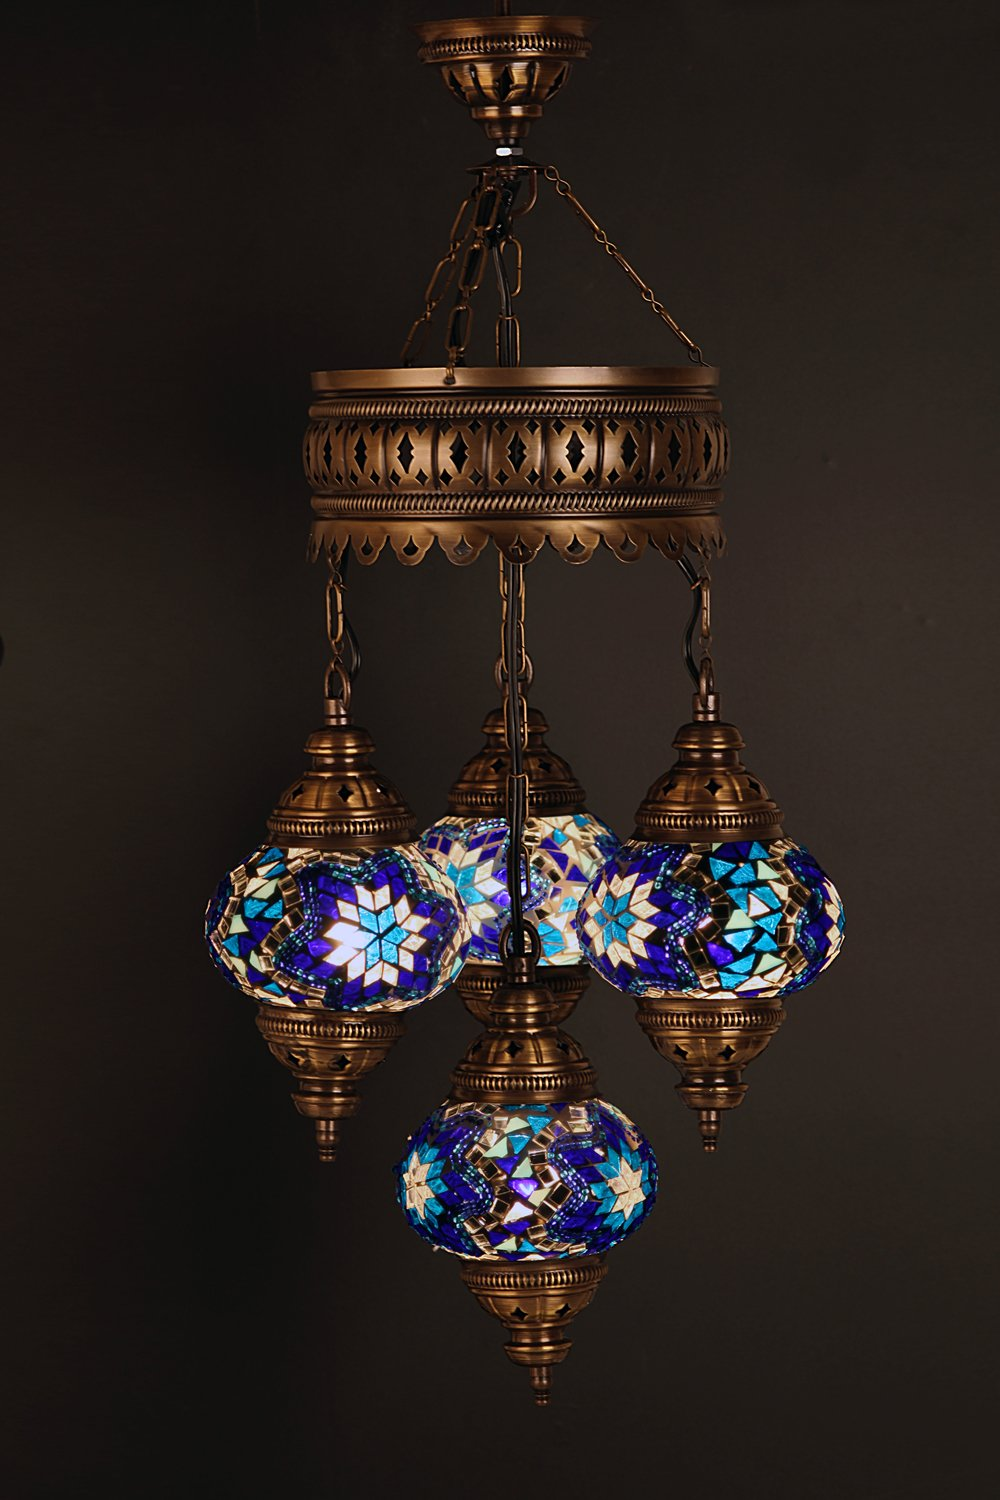 (Height: 27.6 in) Mosaic Chandelier Set 3 Globes, Handmade Authentic Tiffany Lighting Moroccan Lamp Glass Stunning Bedside Night Lights Brass&Glass Ottoman Turkish Style